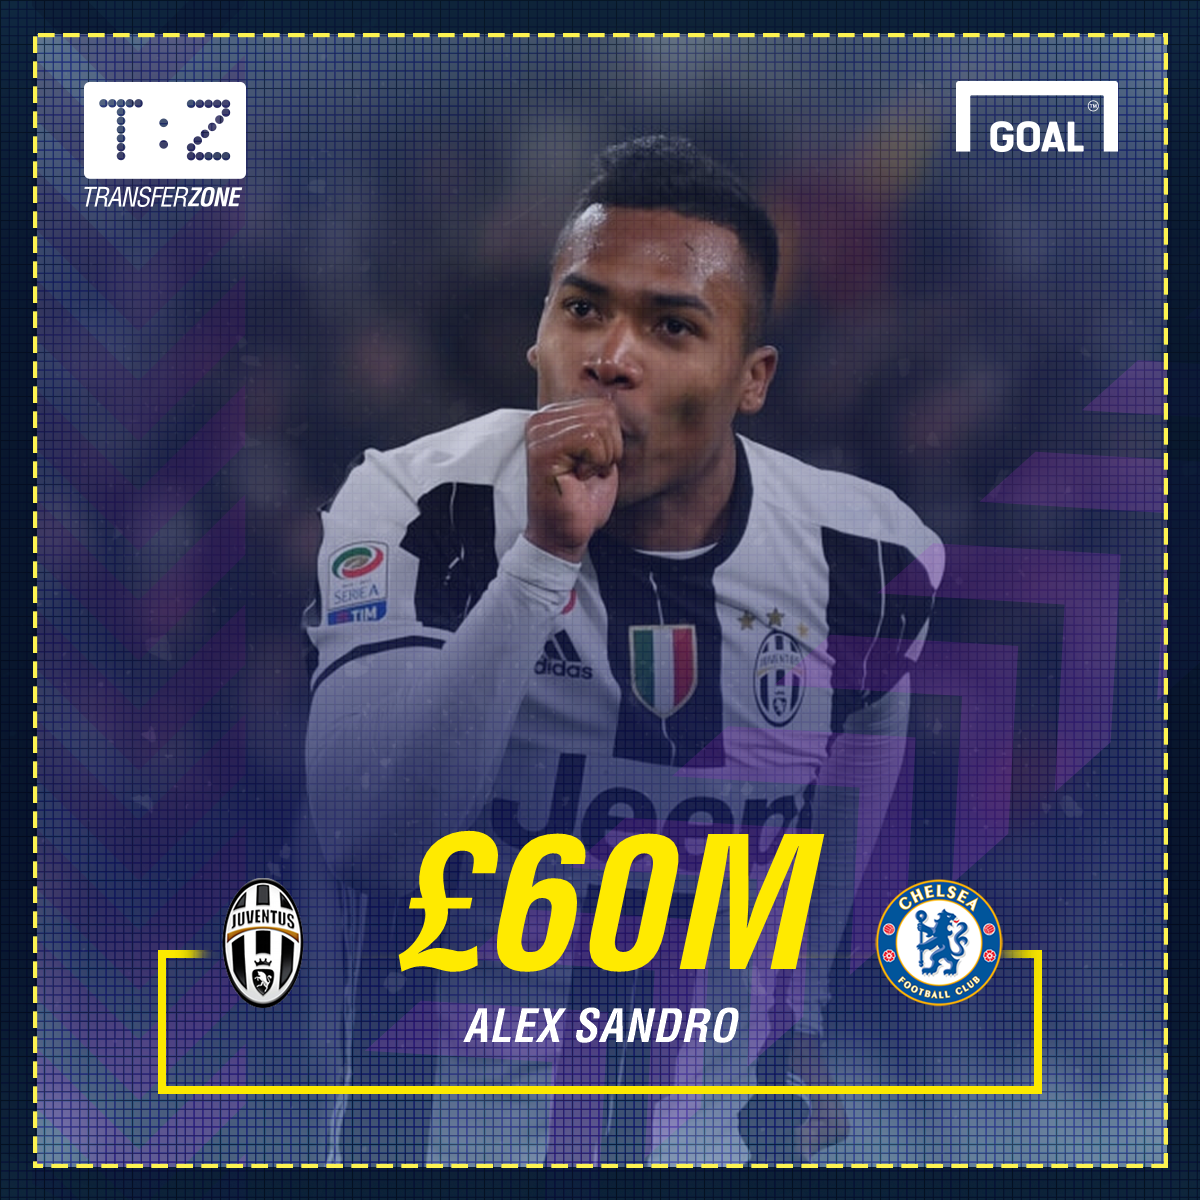 World class Alex Sandro will take Chelsea to the next level | Goal.com